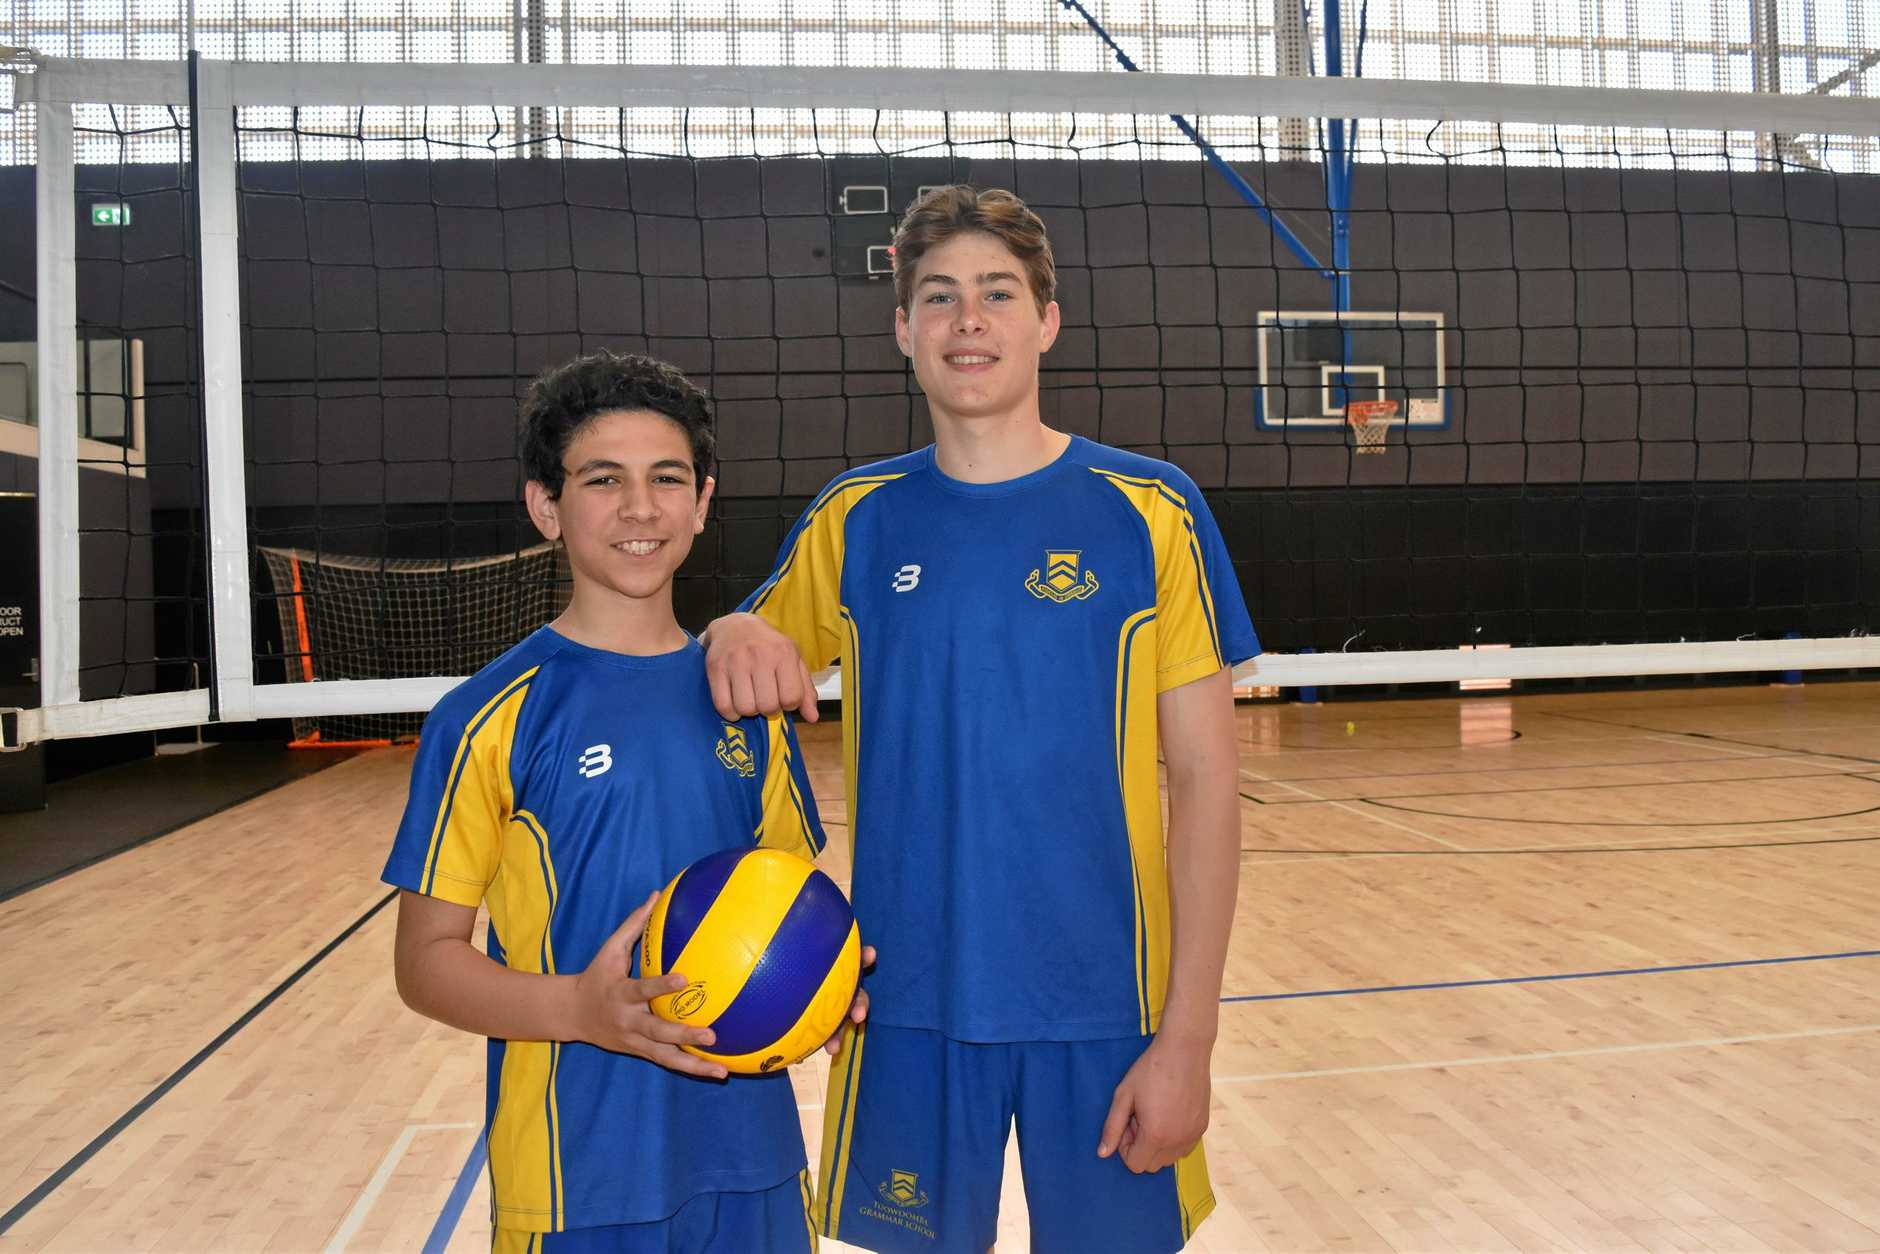 SERVING IT UP: Toowoomba Grammar School volleyballers Hussein Yusaf (left) and Ben Hood will represent Queensland at the Australian Junior Volleyball Championships in Canberra later this month.